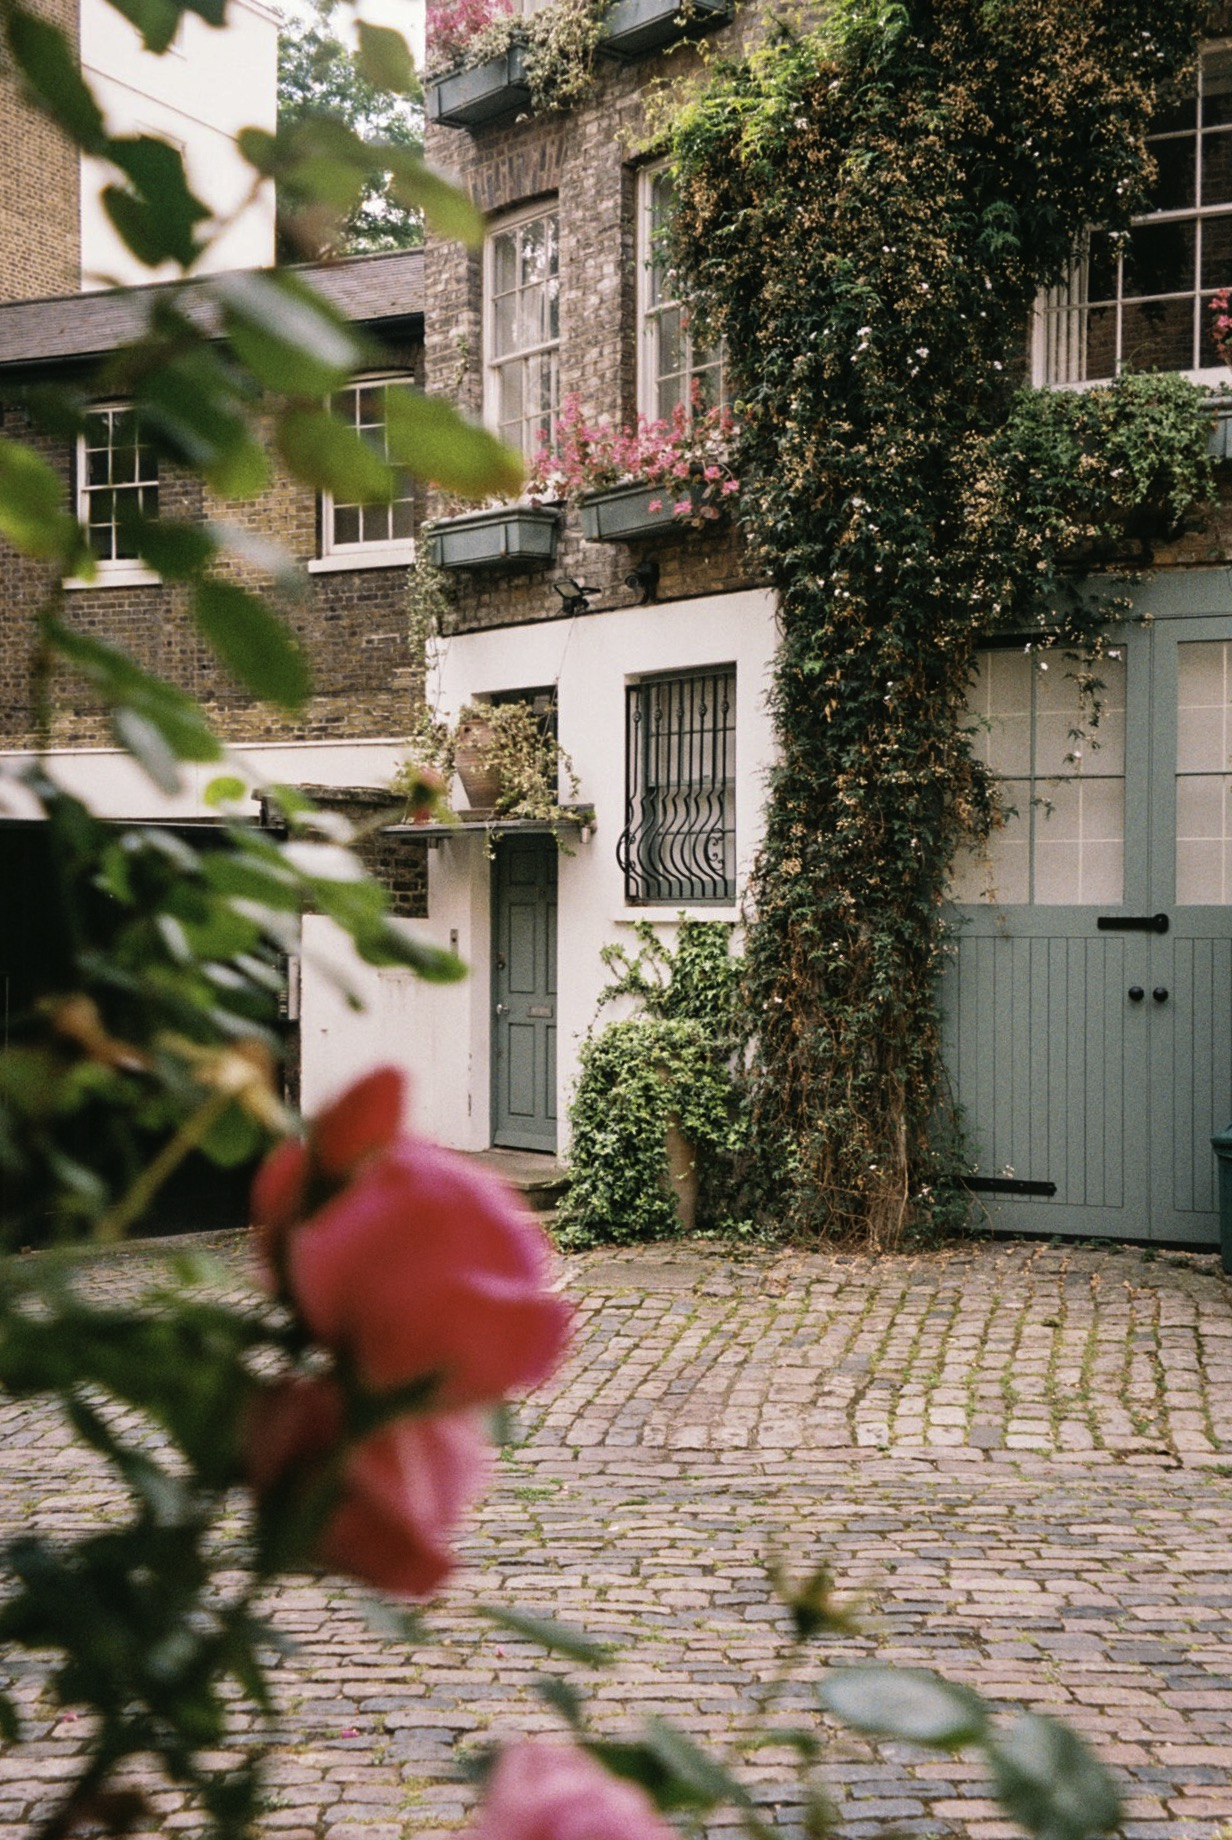 Another mews near by Sloane Square.  / Um mews perto de Sloane Square.